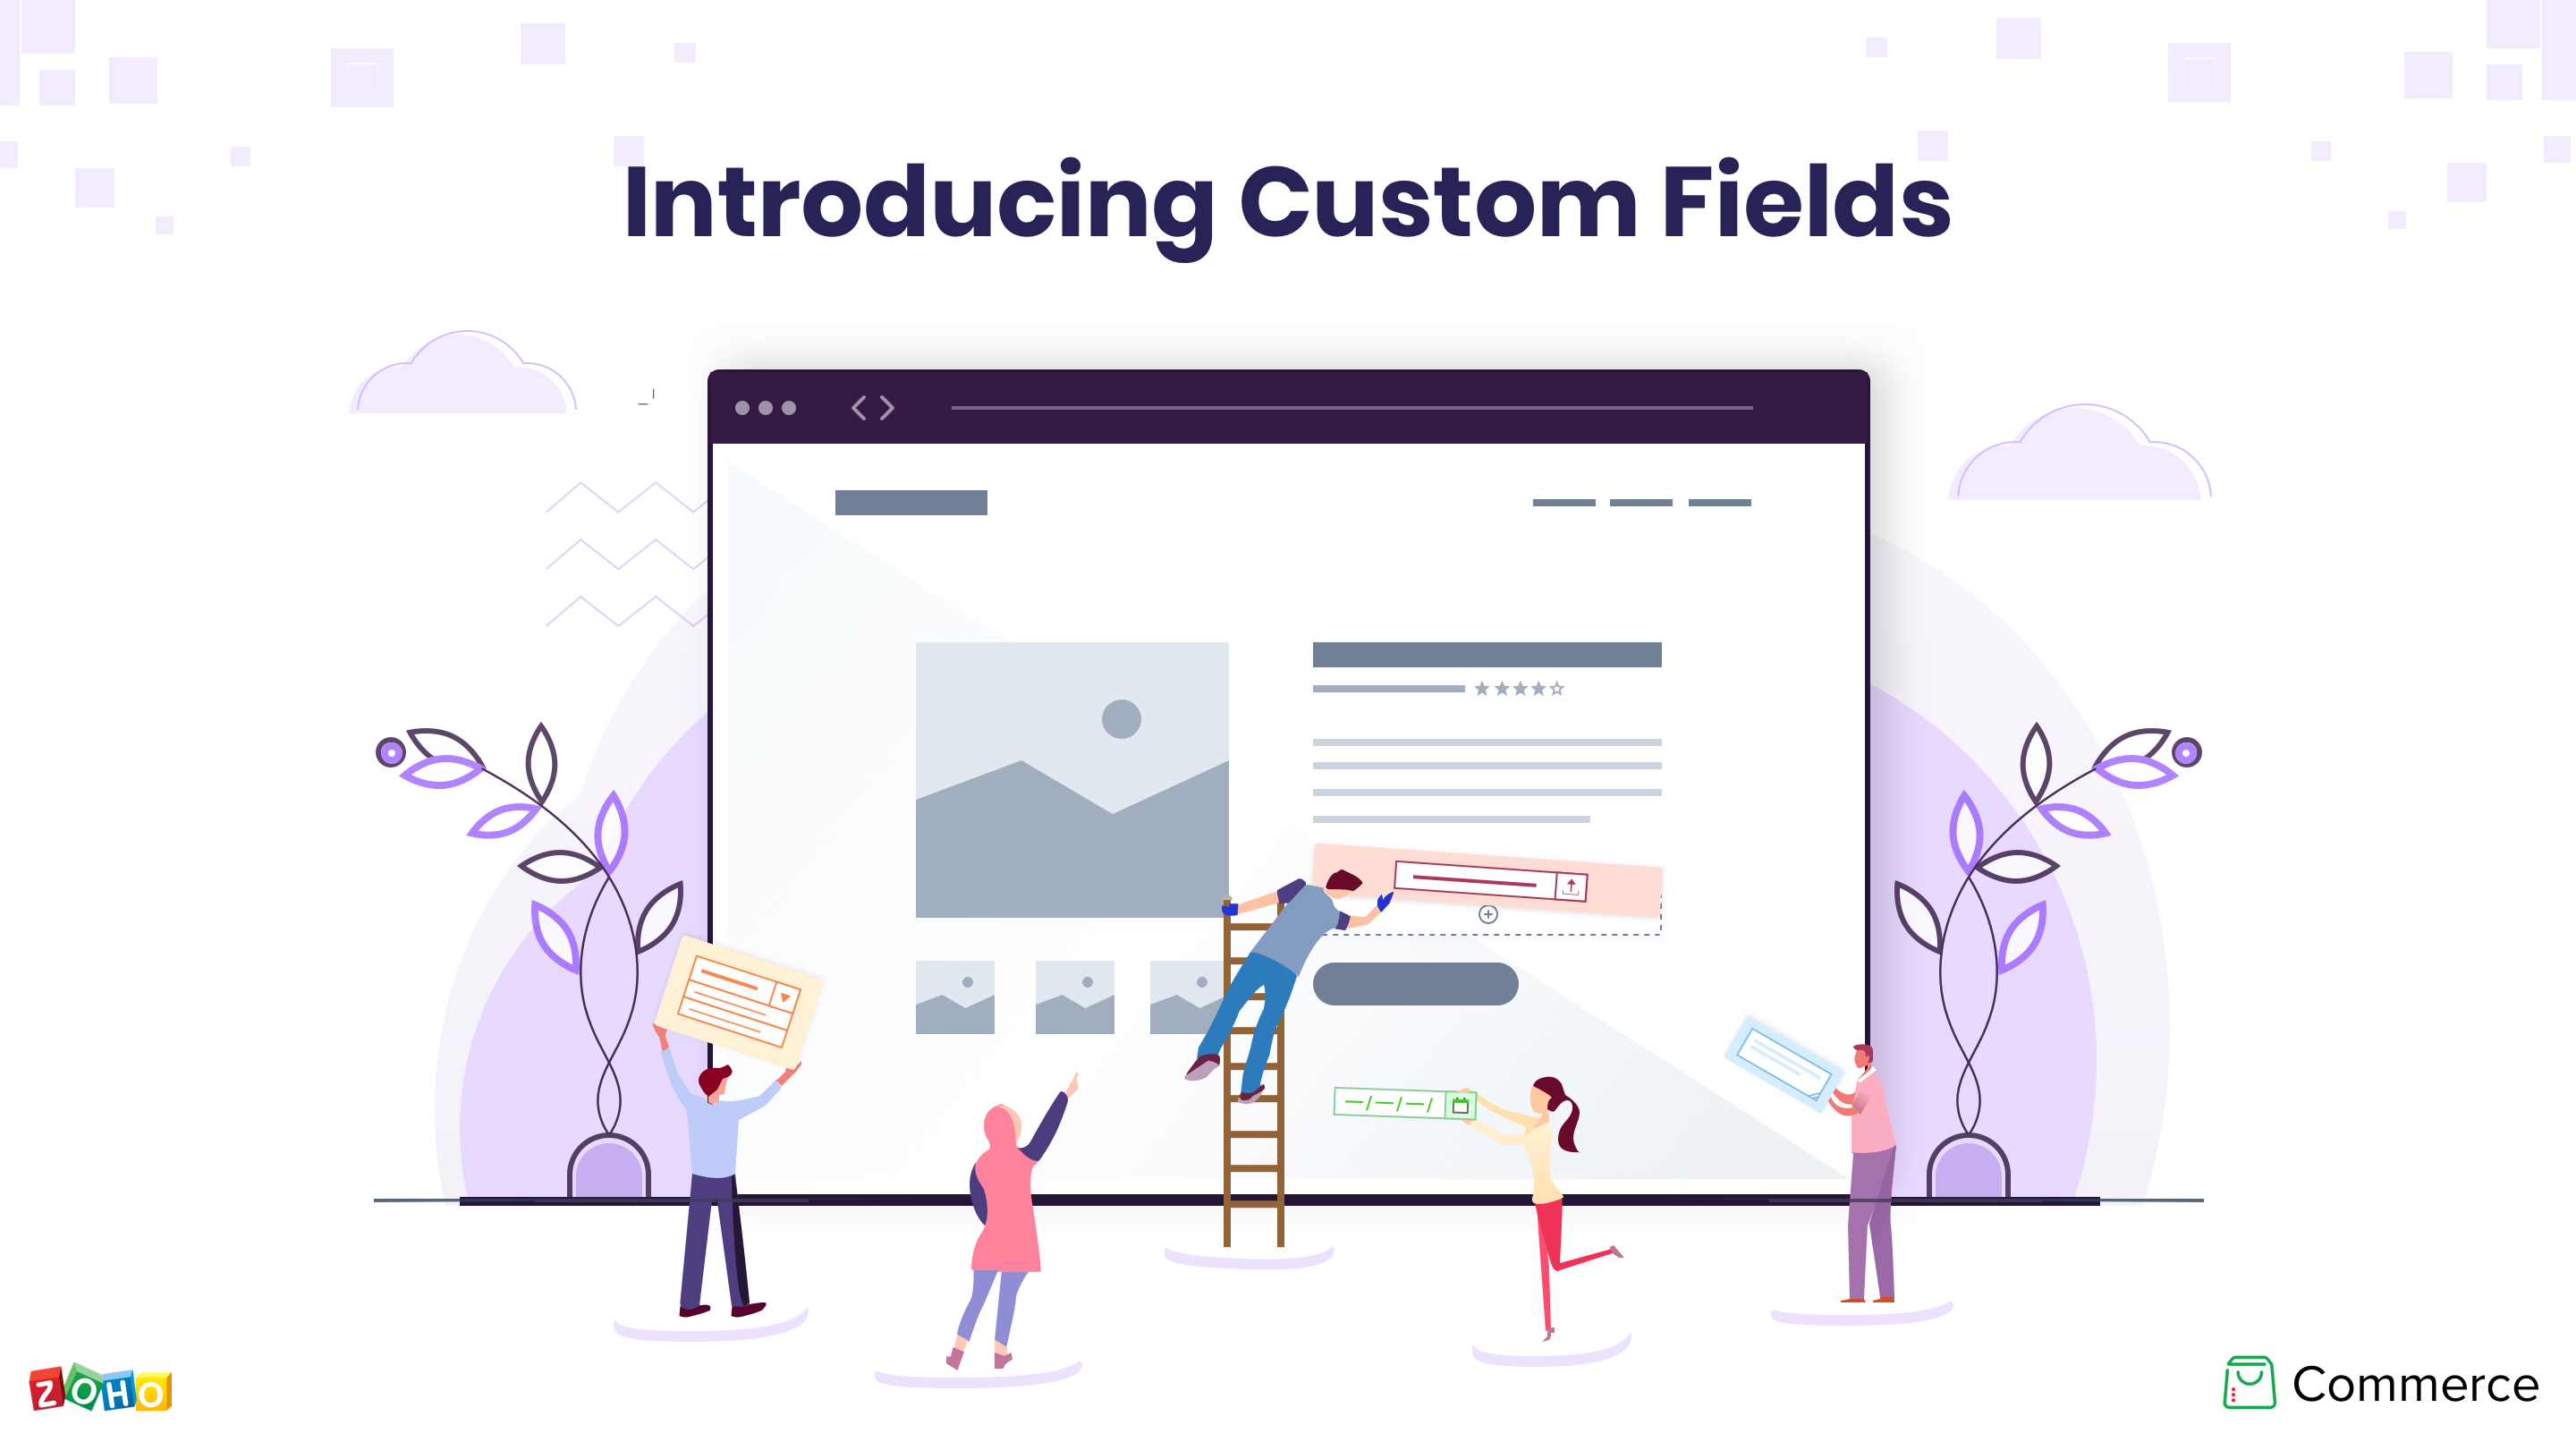 Introducing Custom Fields: Now add customization for your products